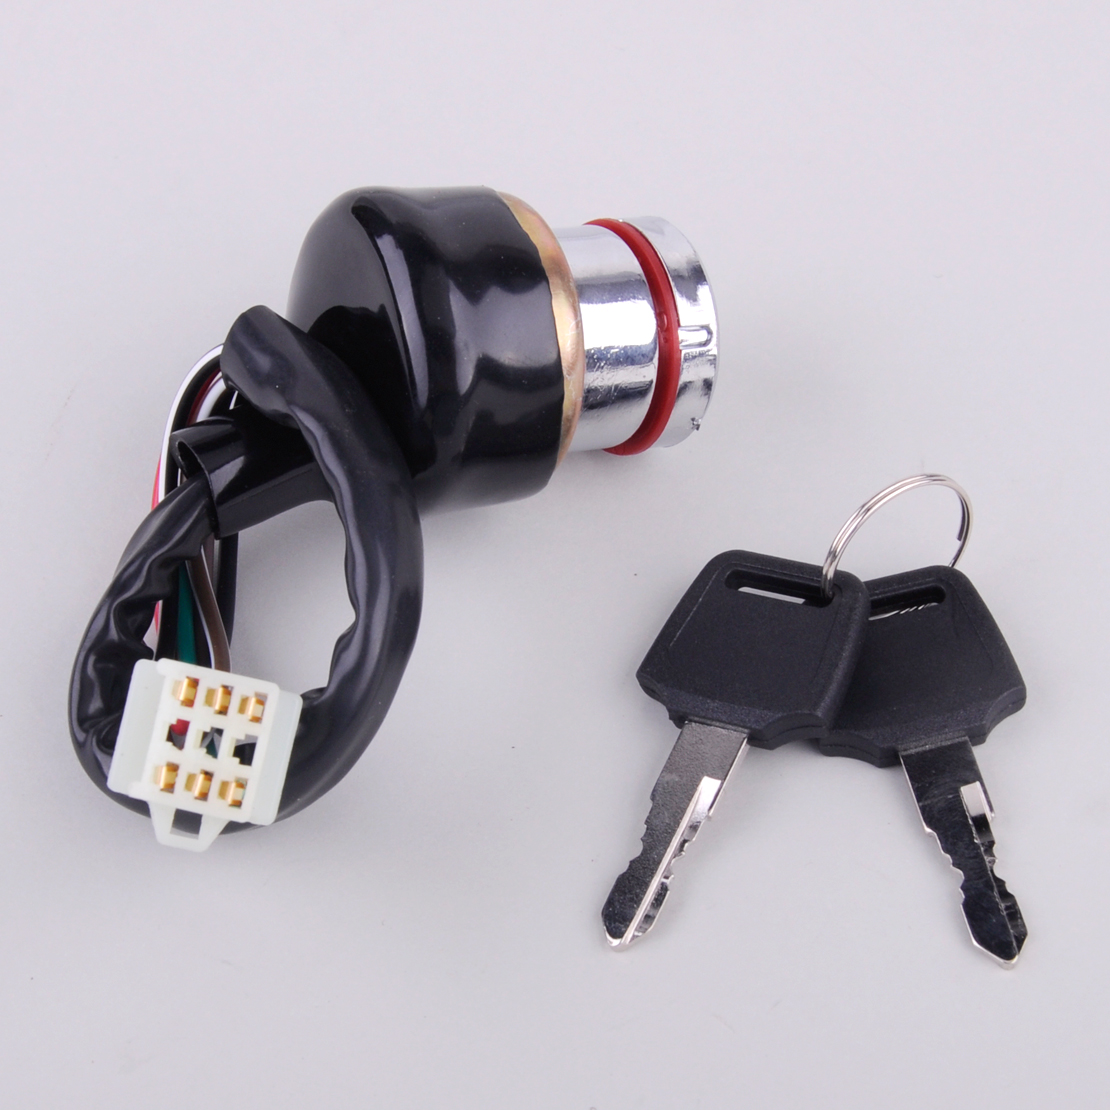 CITALL Car Motorcycle Ignition Switch 3 Position 6 Wire With 2 Key For Harley BMW Honda Suzuki Yamaha Bobber Scooter ATV Go Kart